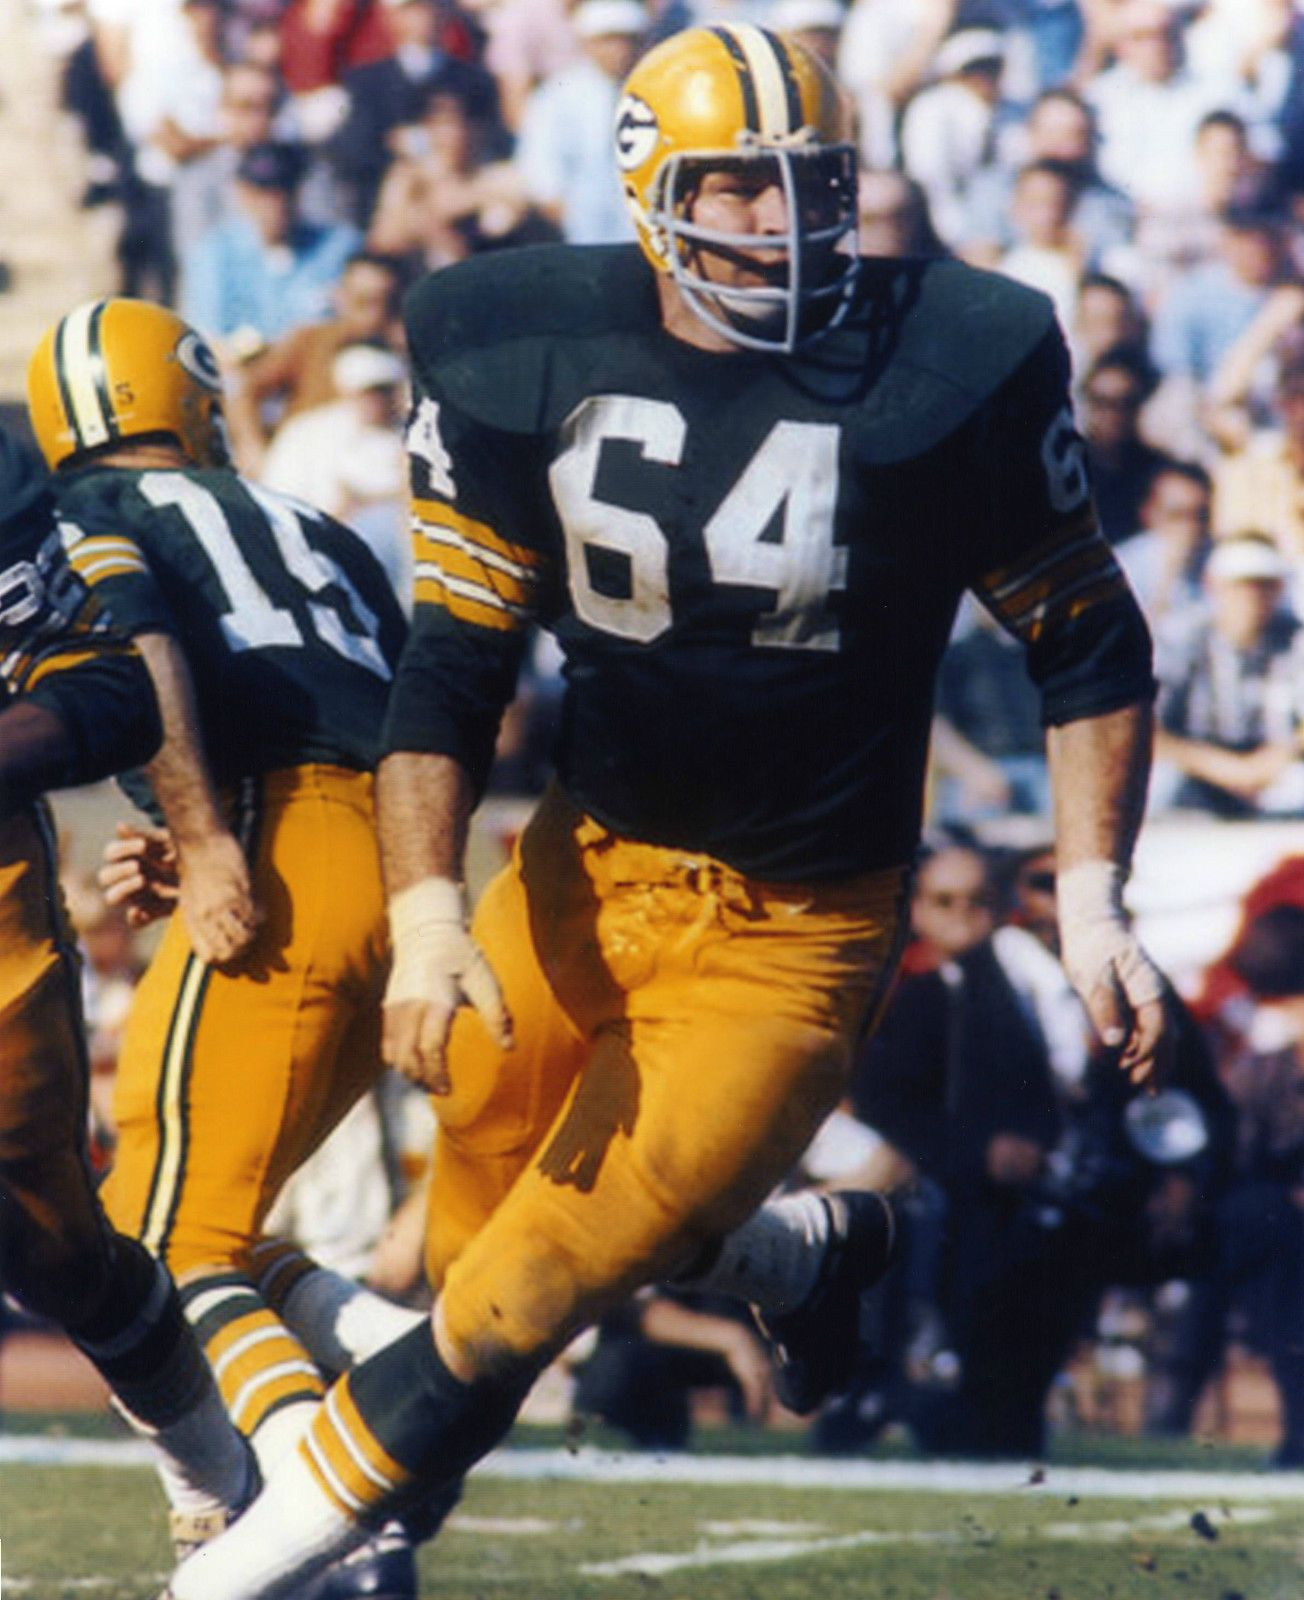 Jerry Kramer Green Bay Packers 1958 68 Green Bay Packers Fans Green Bay Packers Packers